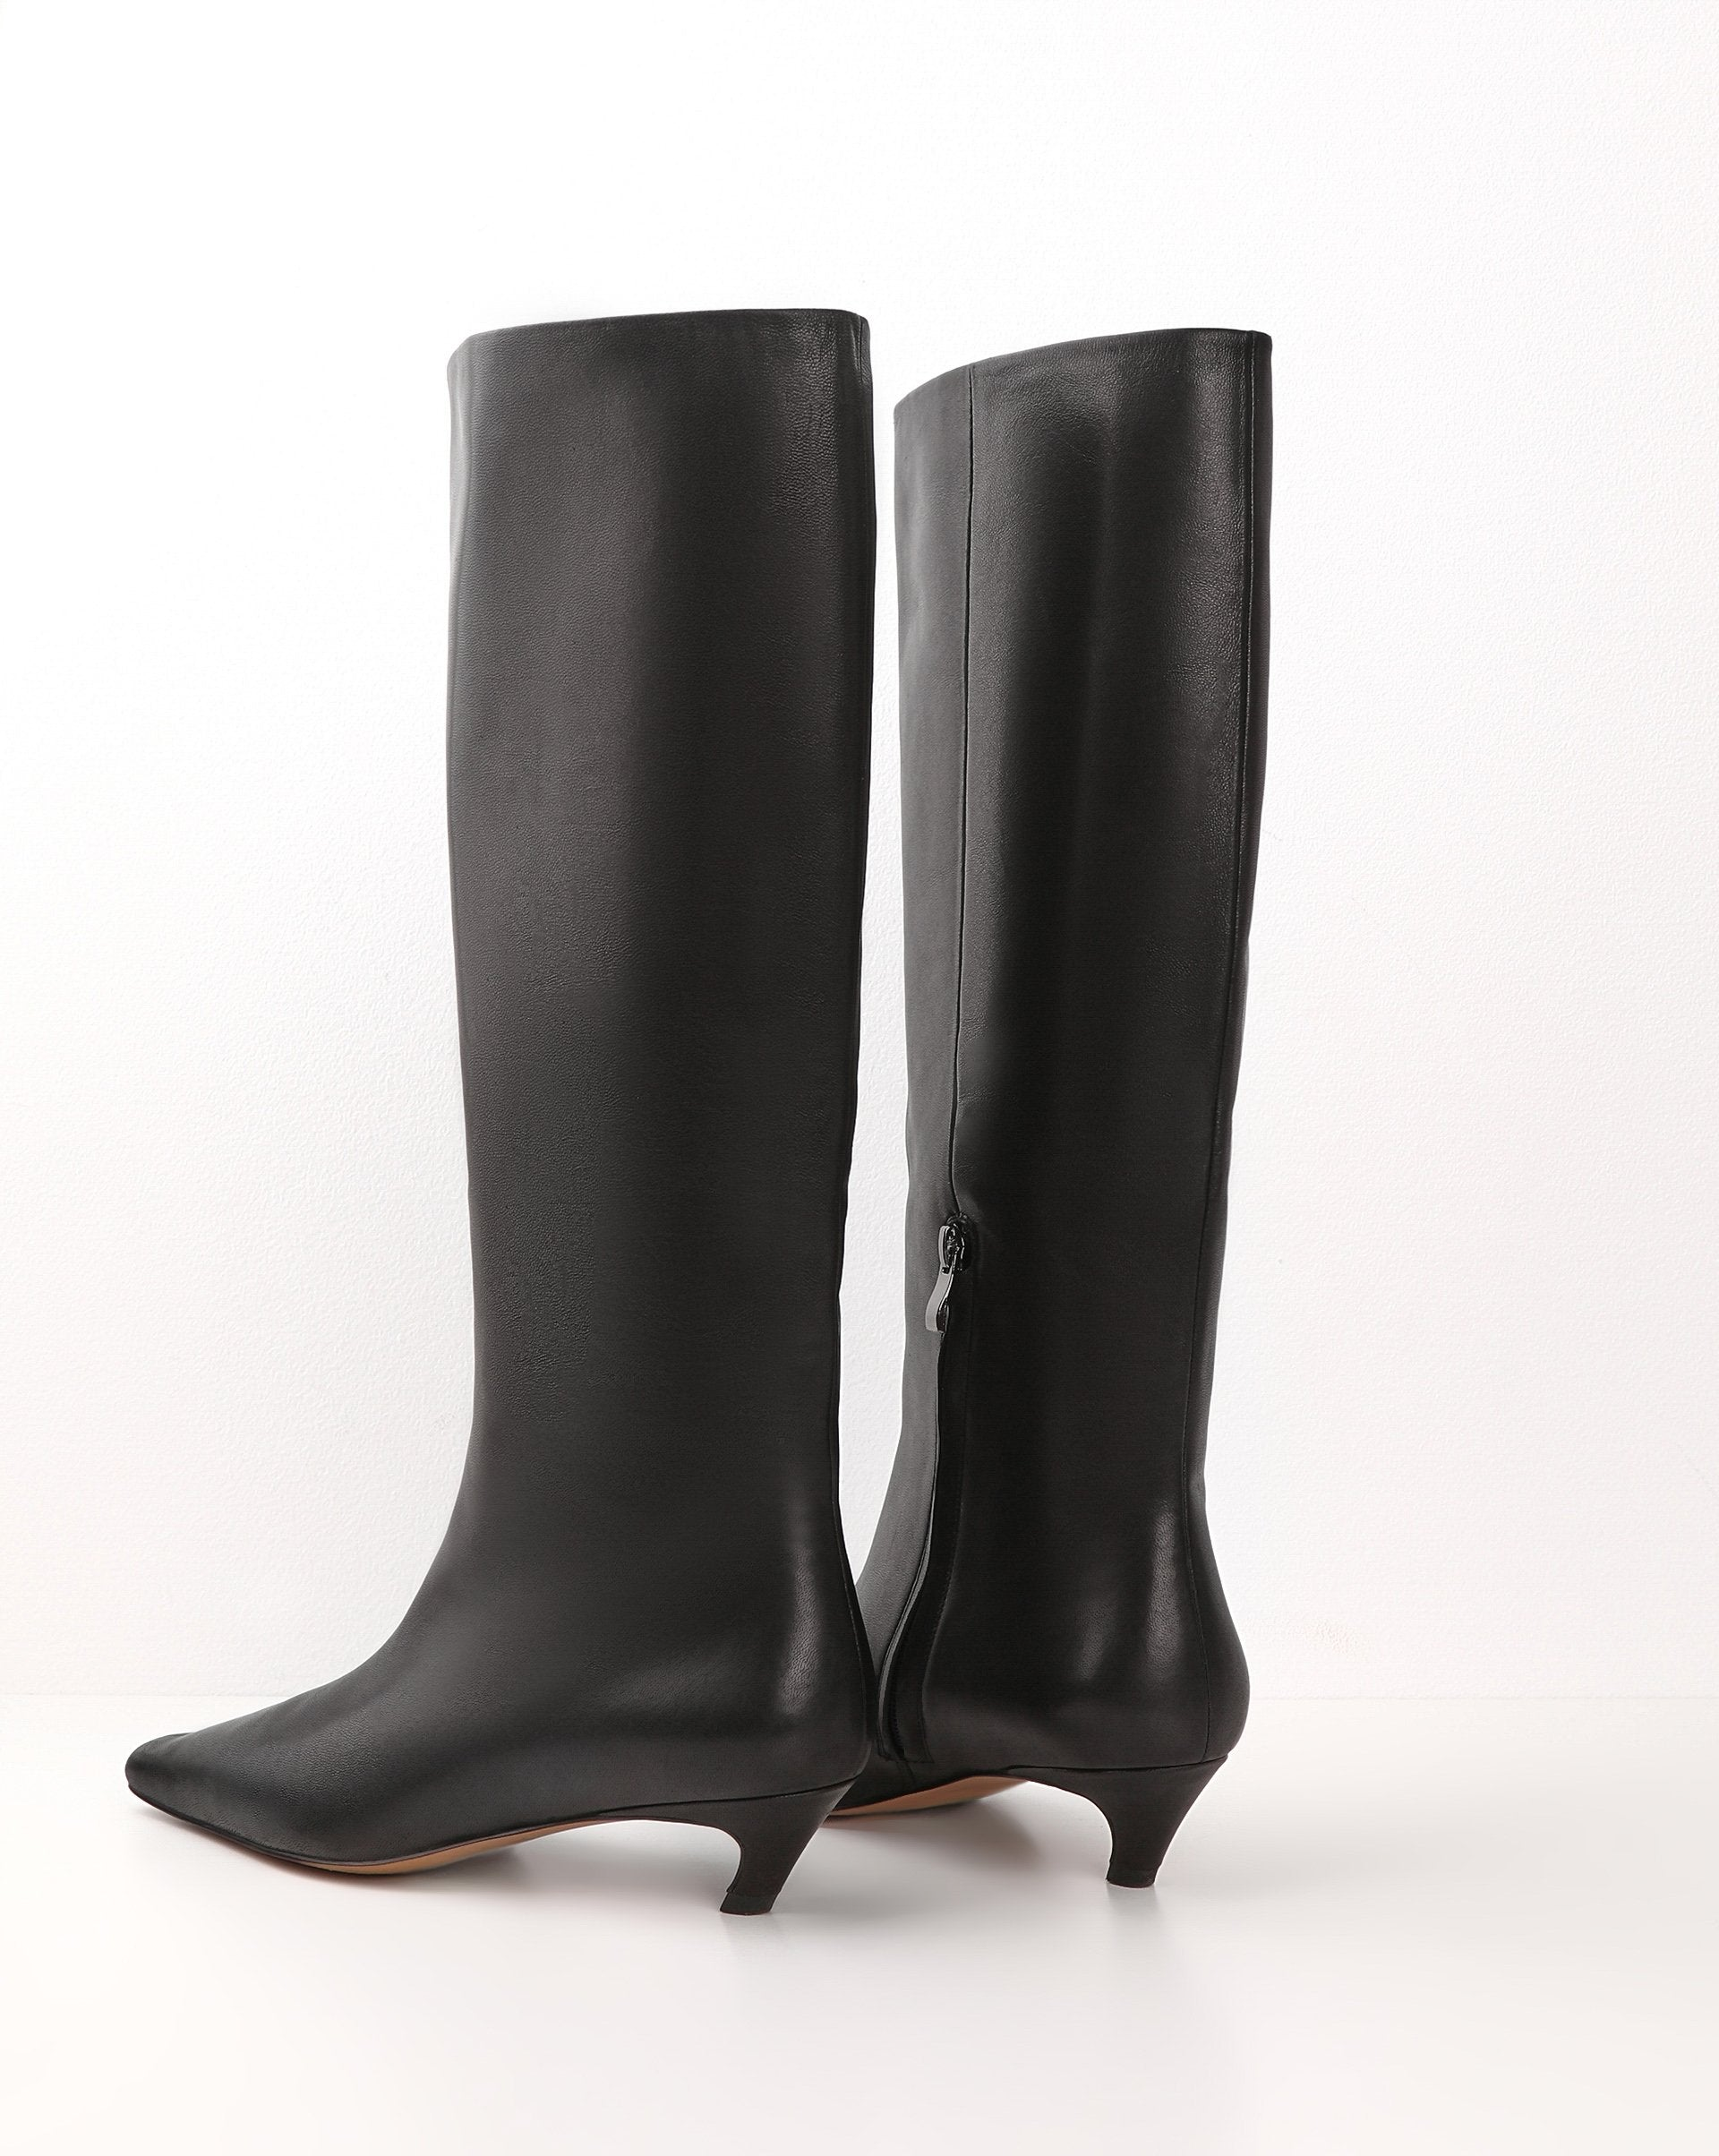 Pointed square toe leather boots - 12 STOREEZ